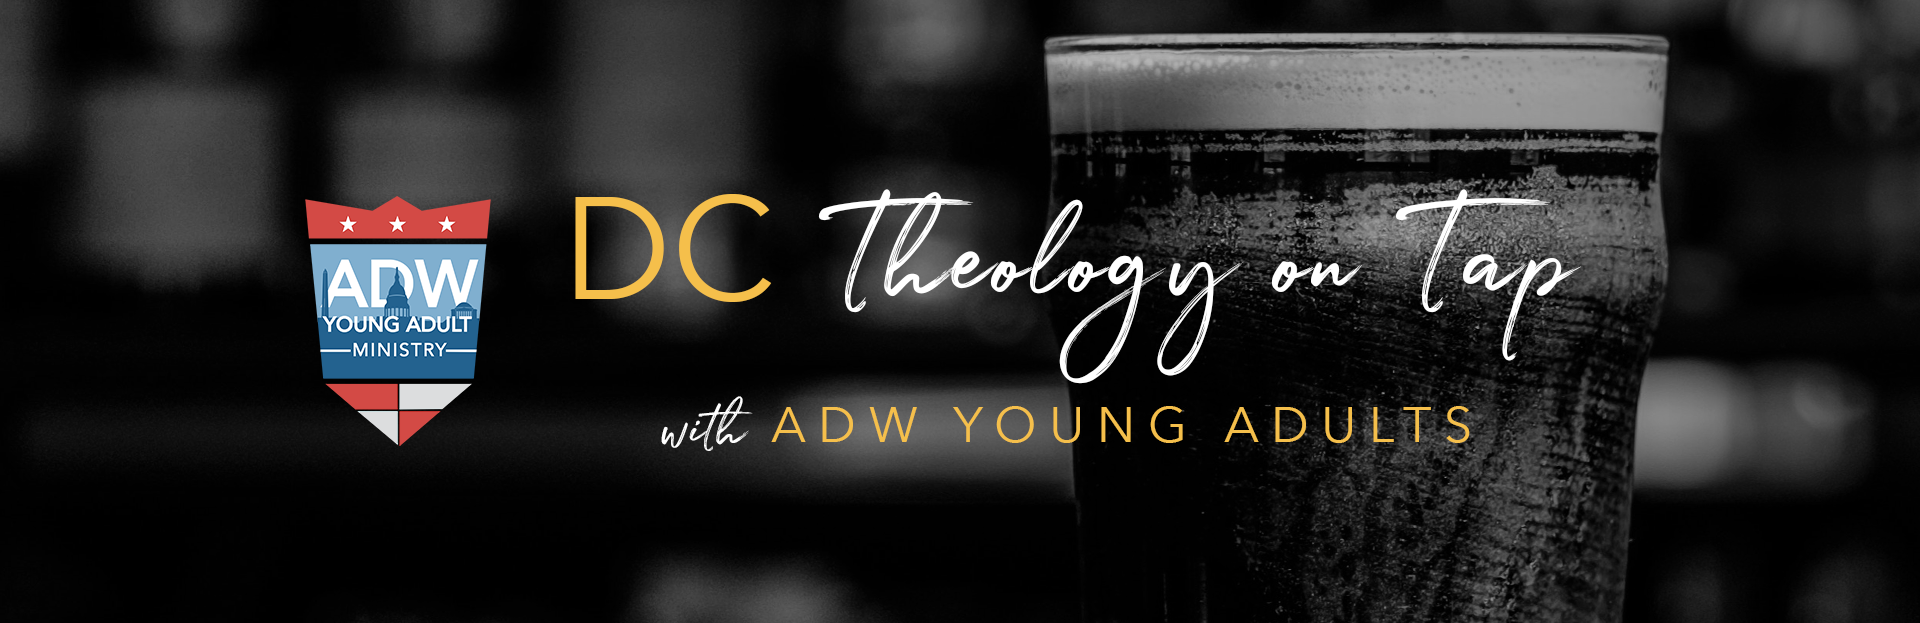 ADW Young Adult Ministry Theology on Tap TOT